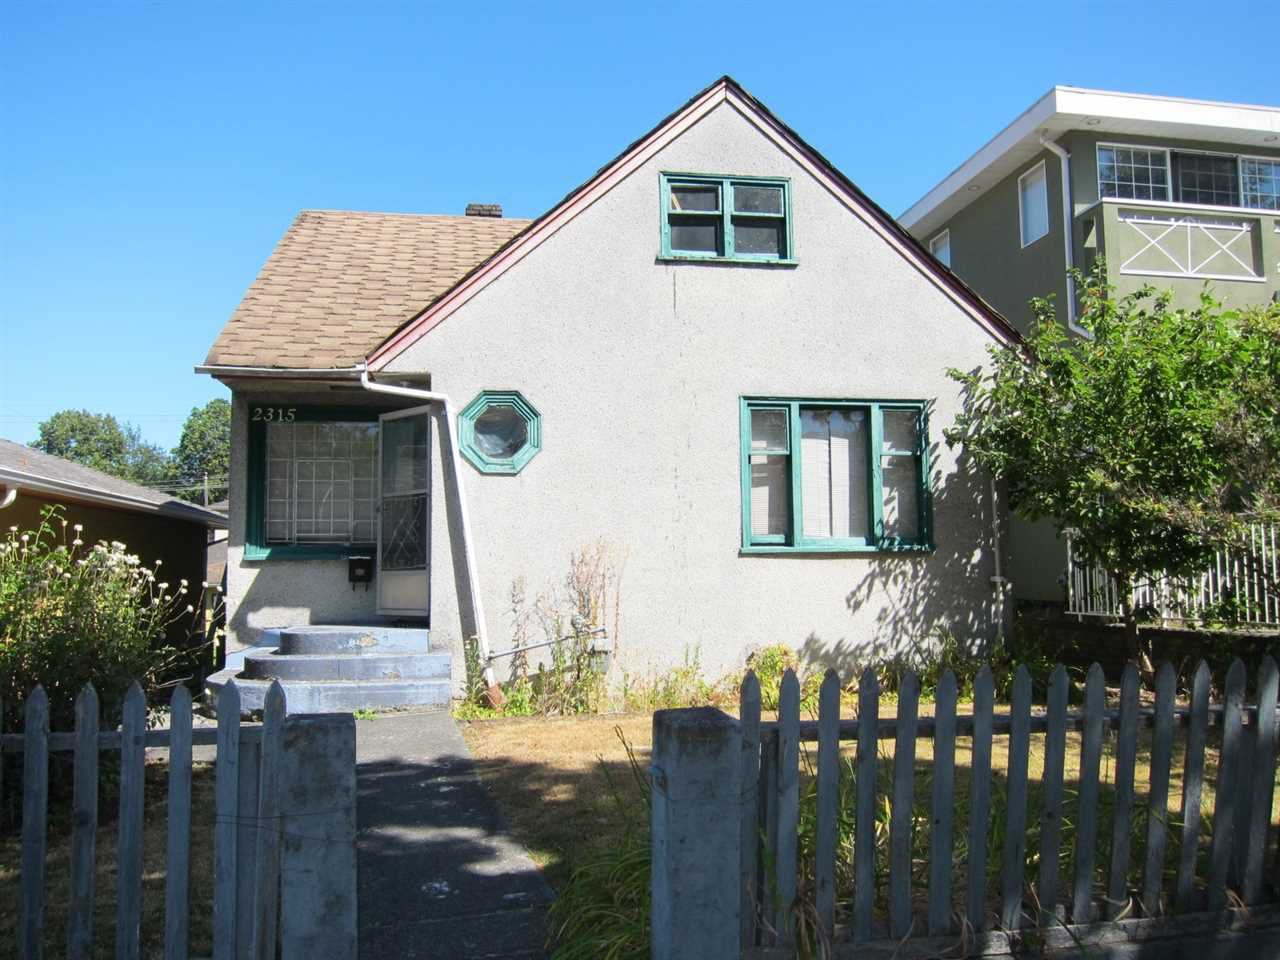 Main Photo: 2315 E 5TH Avenue in Vancouver: Grandview VE House for sale (Vancouver East)  : MLS®# R2200122